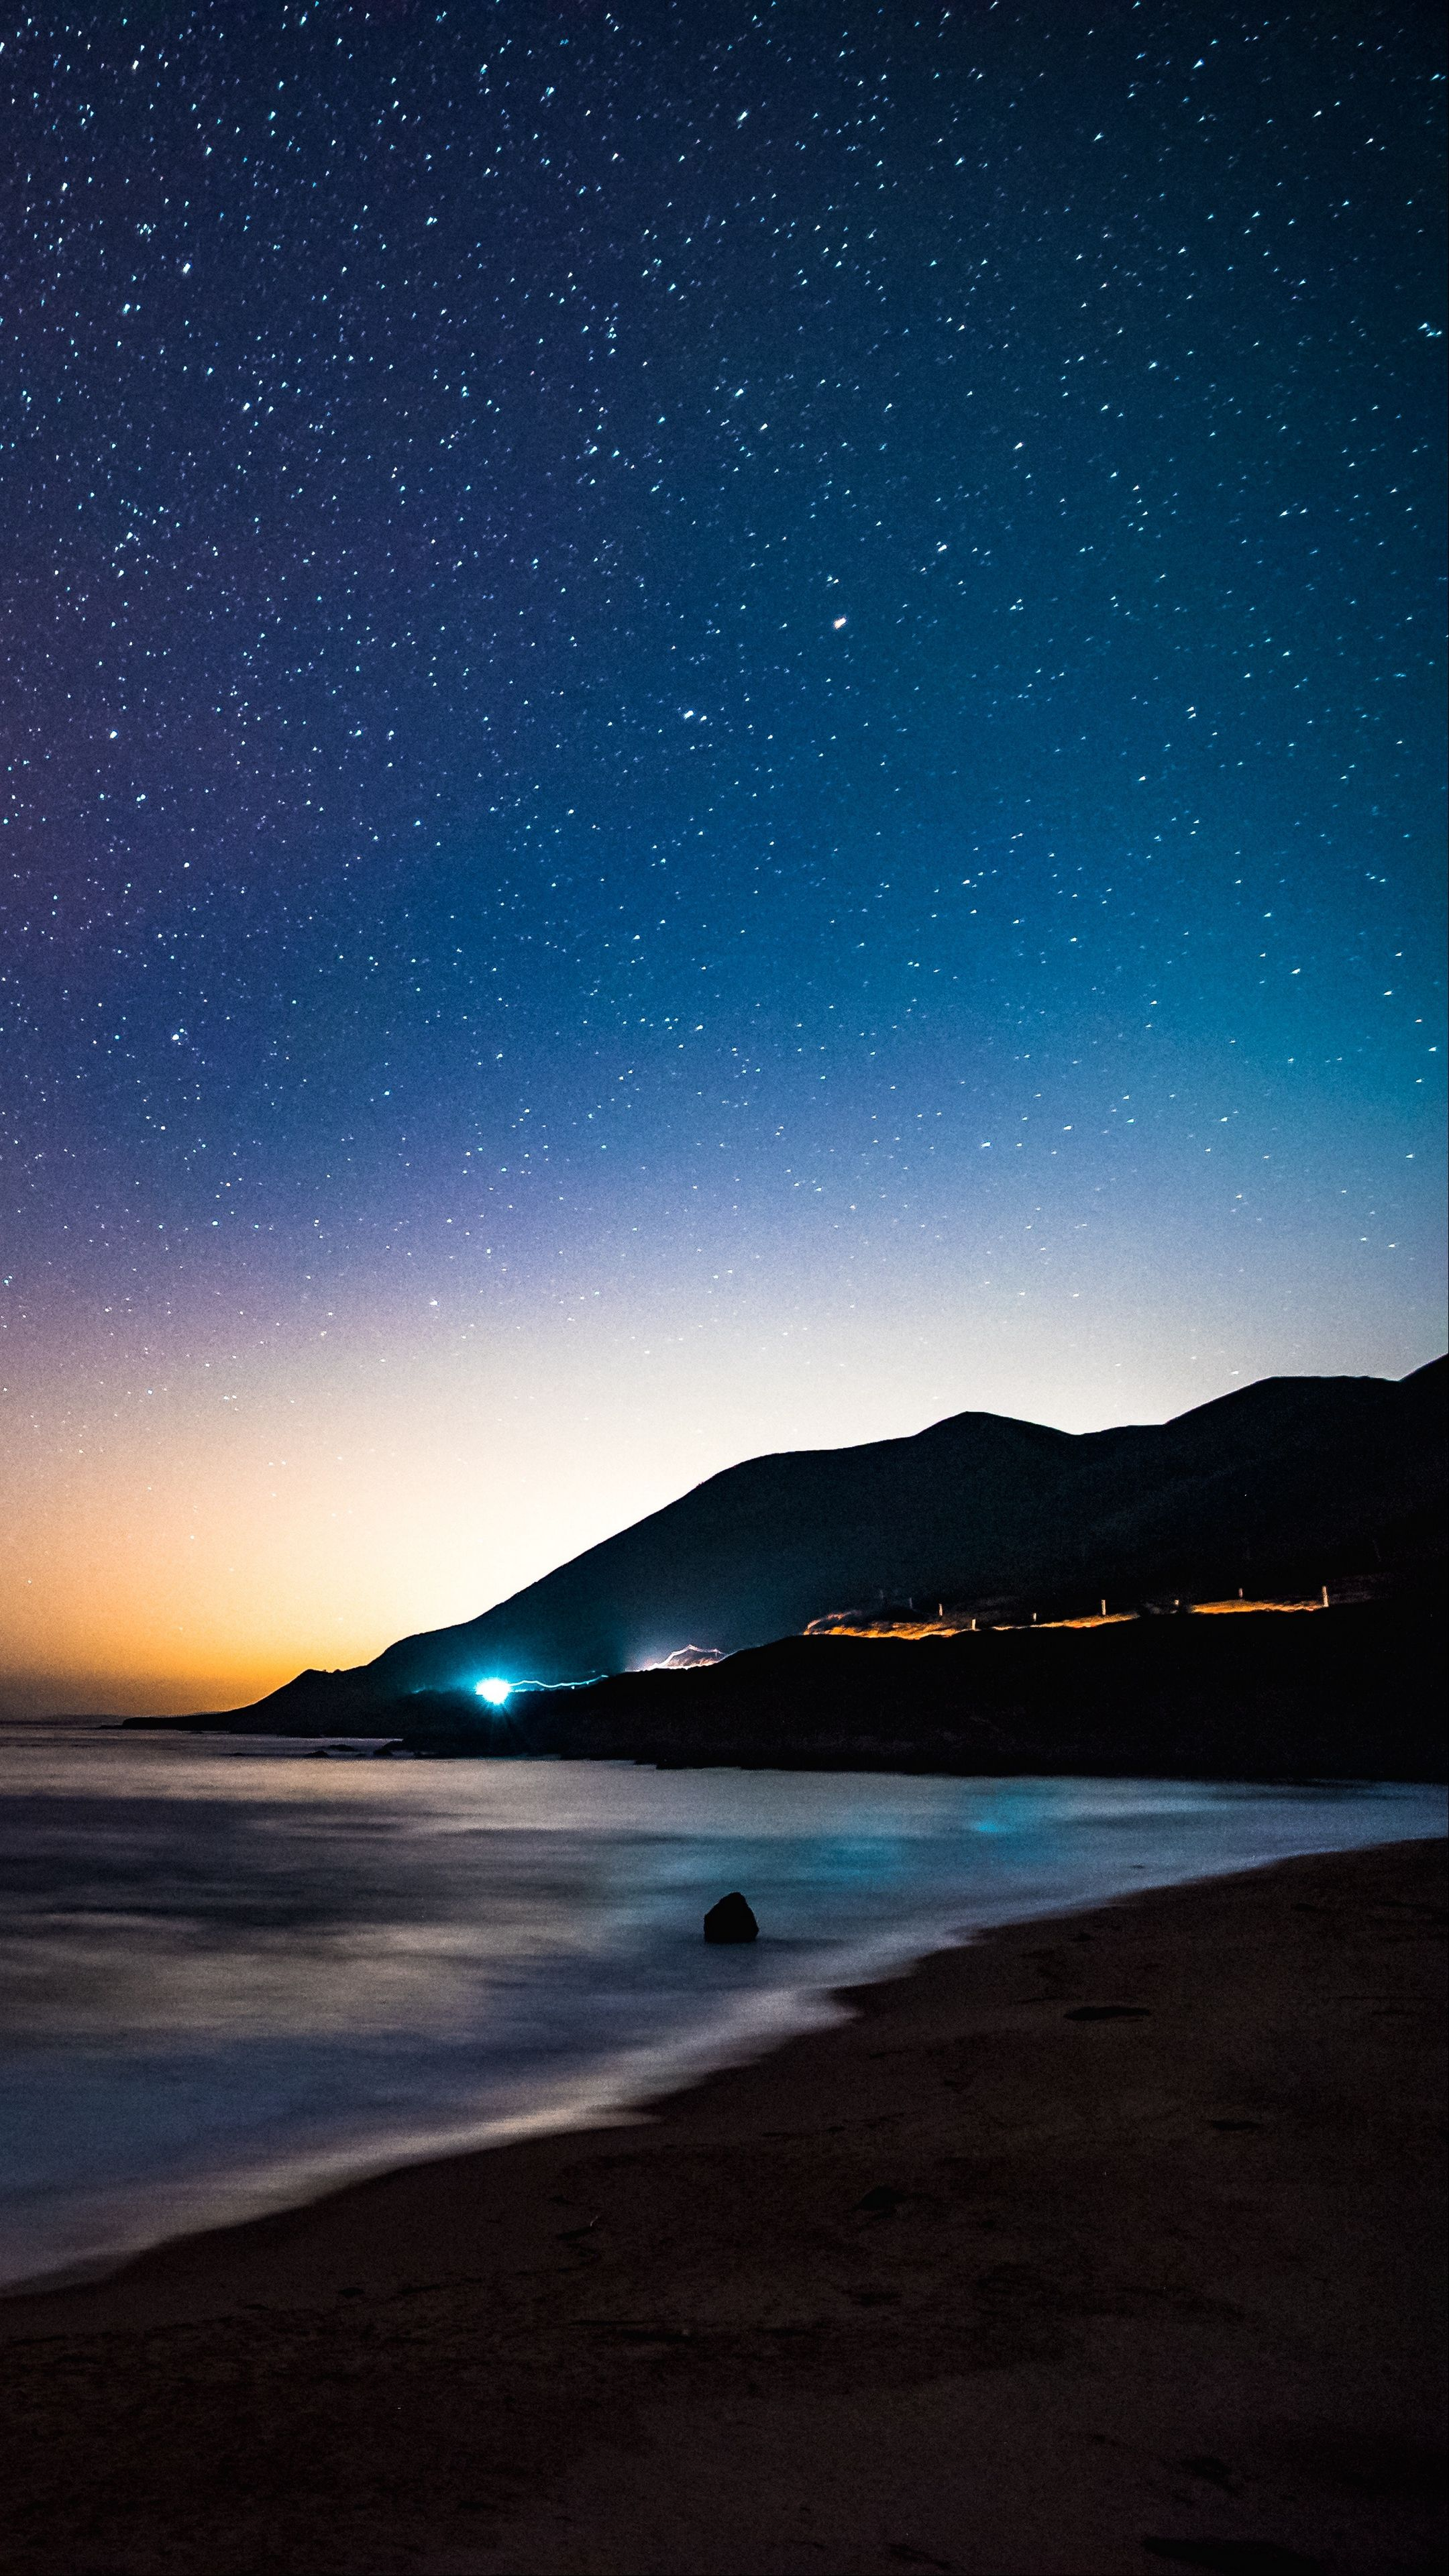 nature starry sky mountains